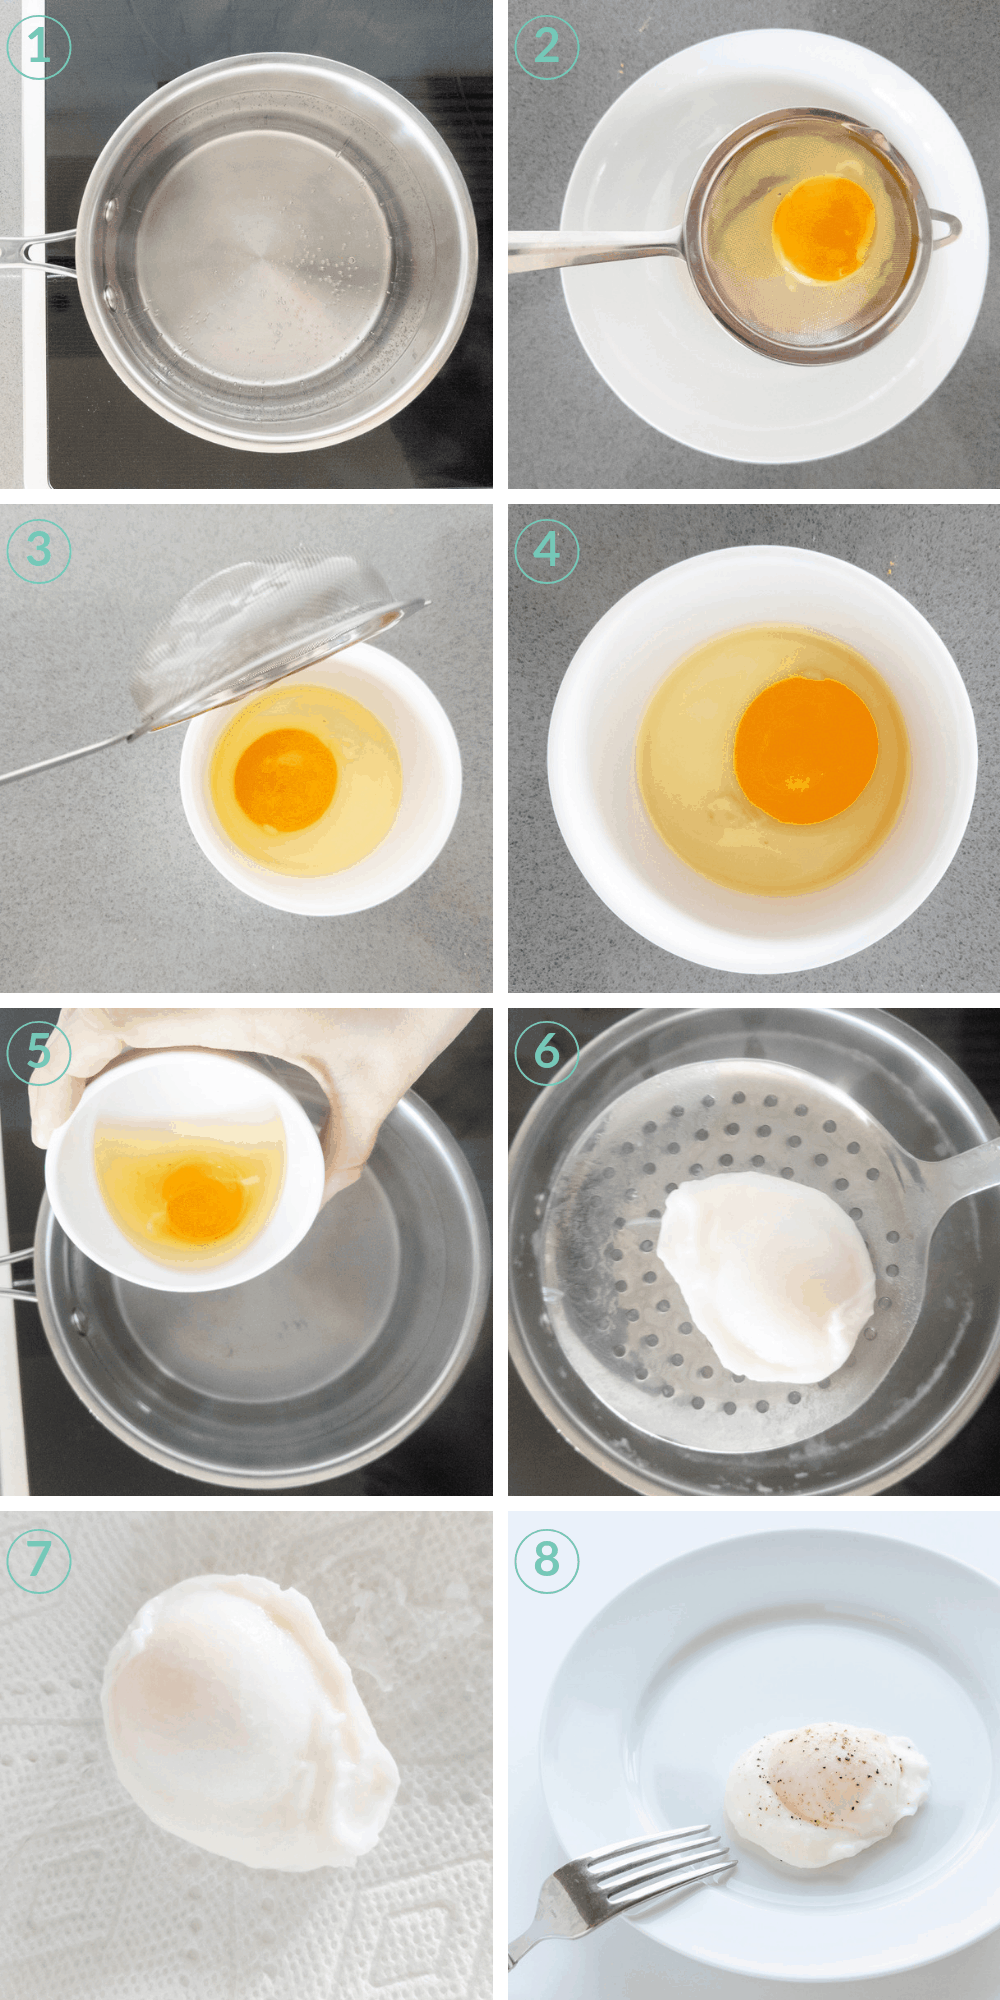 collage process picture showing all the steps to make poached eggs